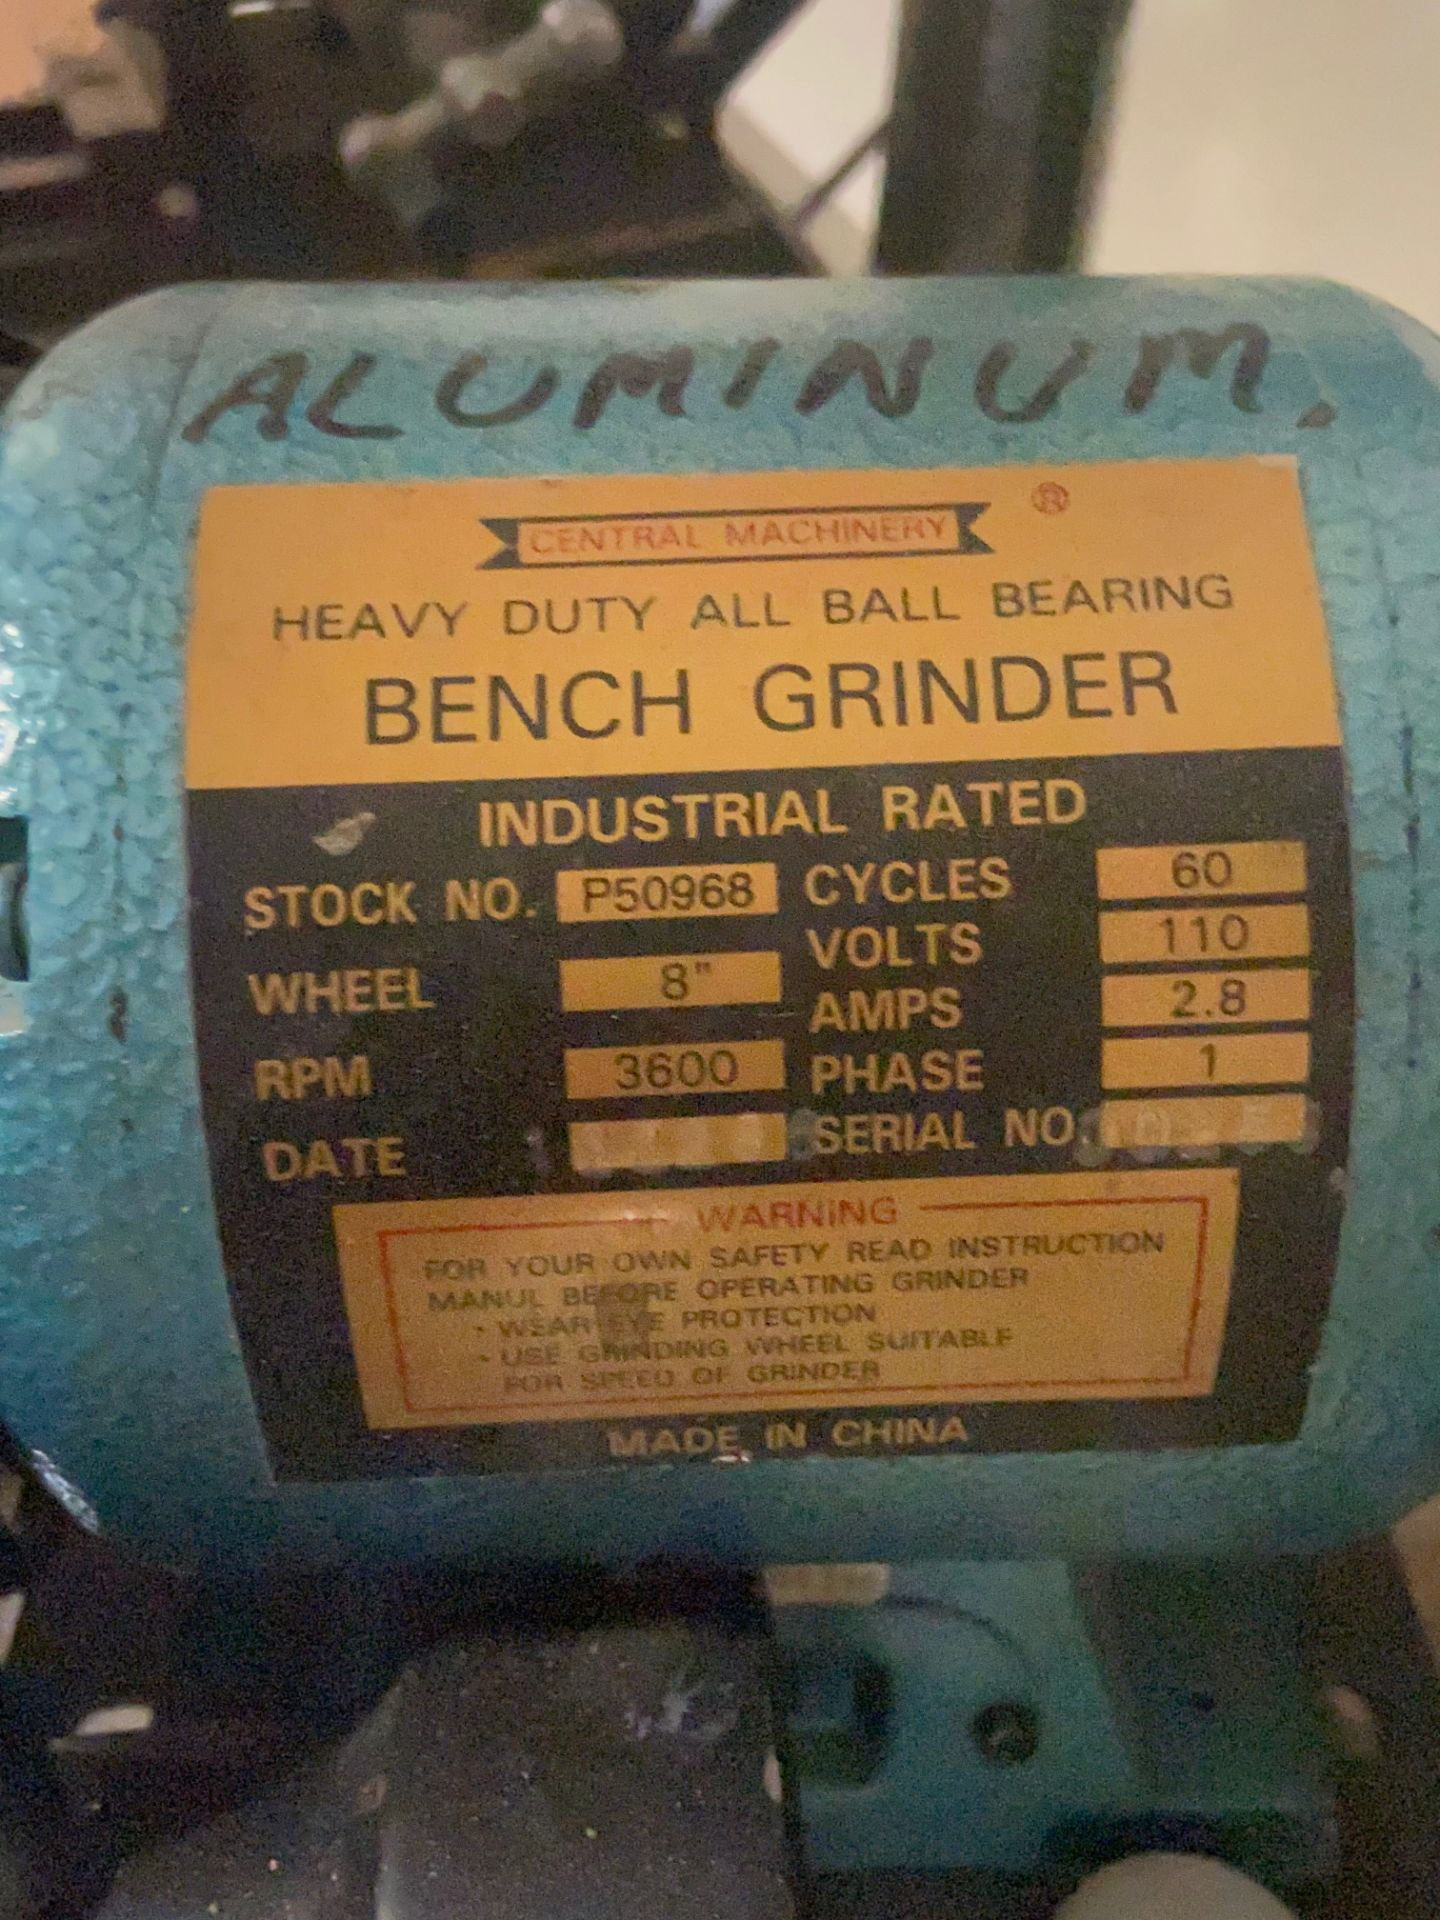 Central Machinery Heavy Duty Bench Grinder, Stock# P50968, 110V, 3600 RPM, Loading/Removal Fee: $25 - Image 3 of 4